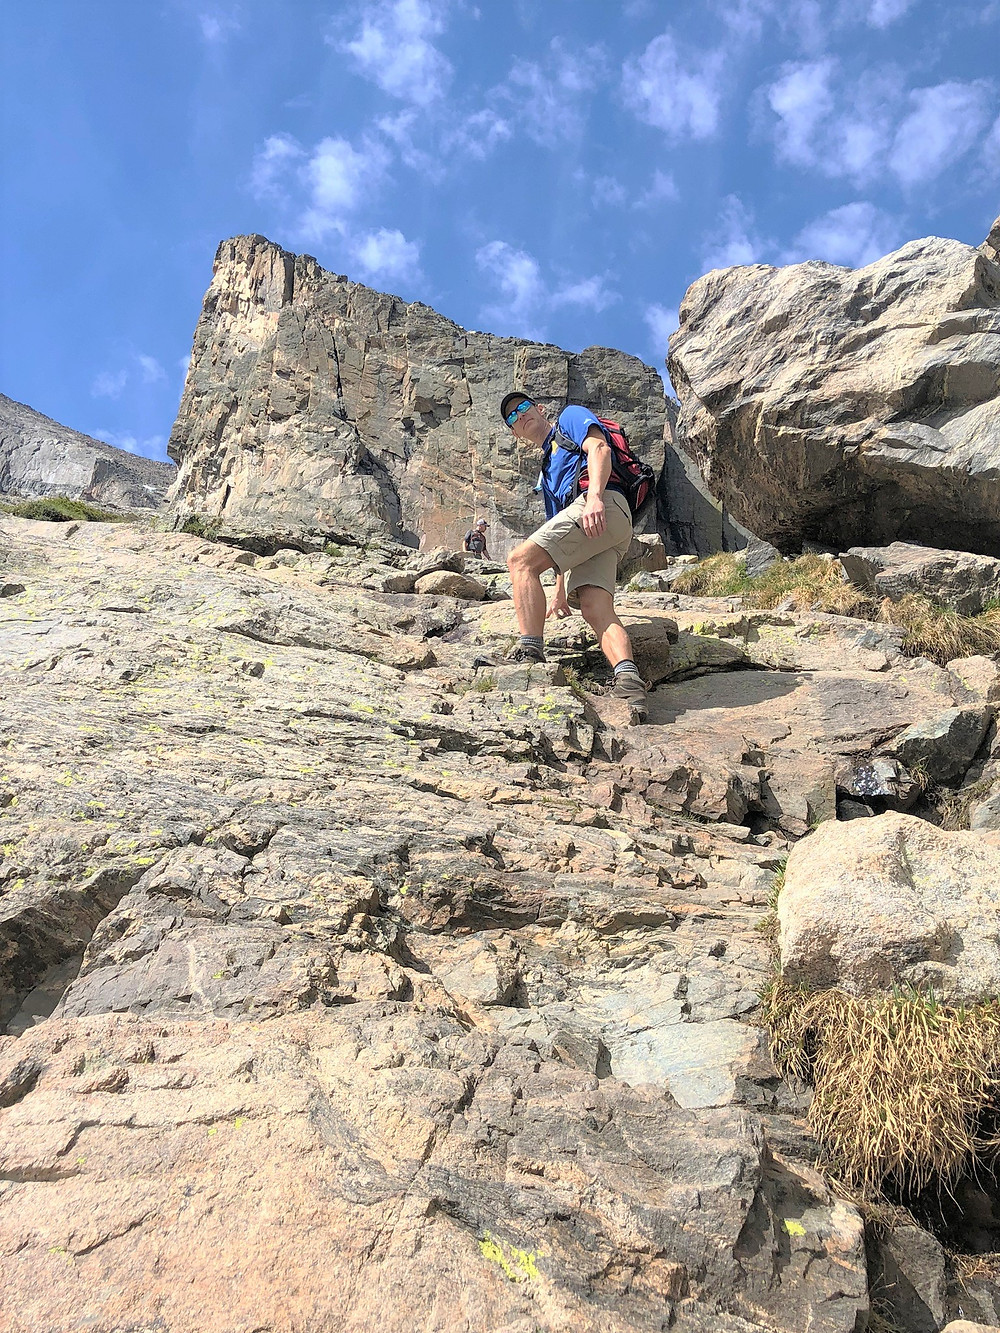 Rocky scramble on section of trail leading to Chasm Lake in Rocky Mountain National Park